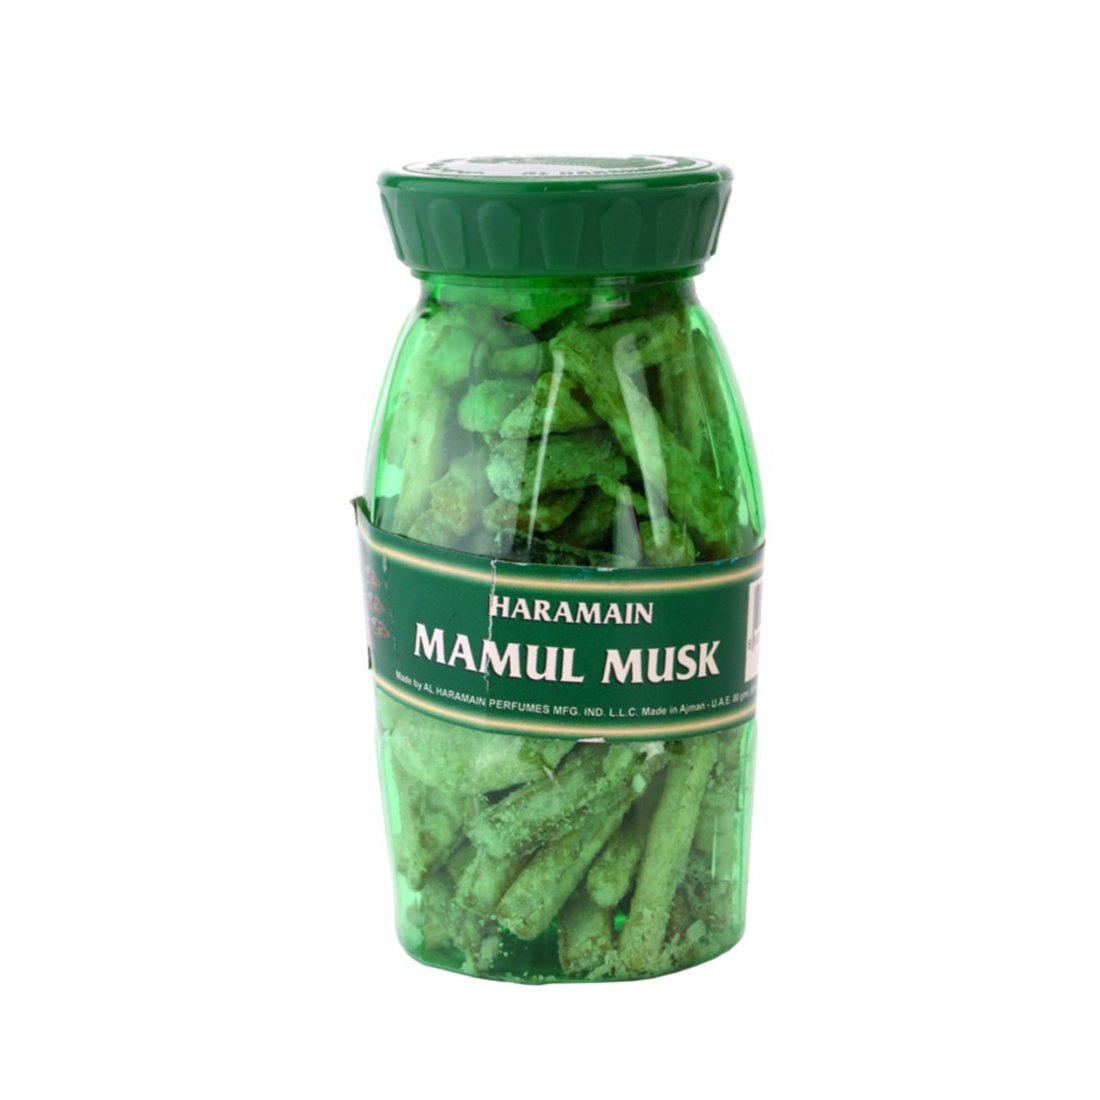 Al Haramain Mamul Musk Pure Original Bukhoor Incense Sticks - 80g